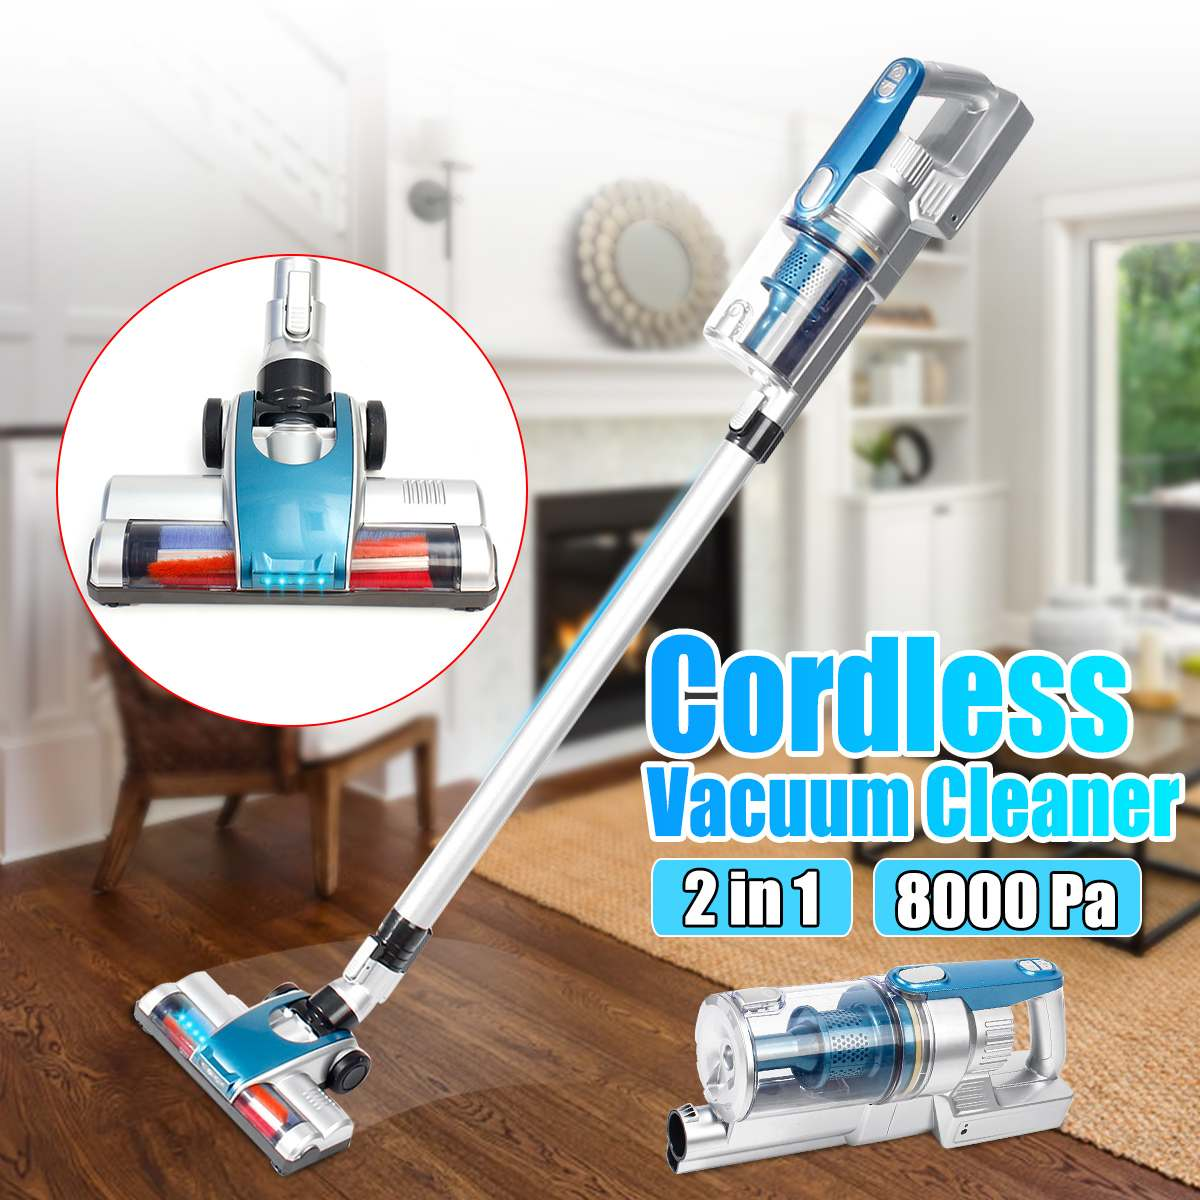 120W Protable 2 In 1 Lightweigh Handheld Wireless Vacuum Cleaner Cyclone Filter Strong Suction Dust Collector Handheld vacuum